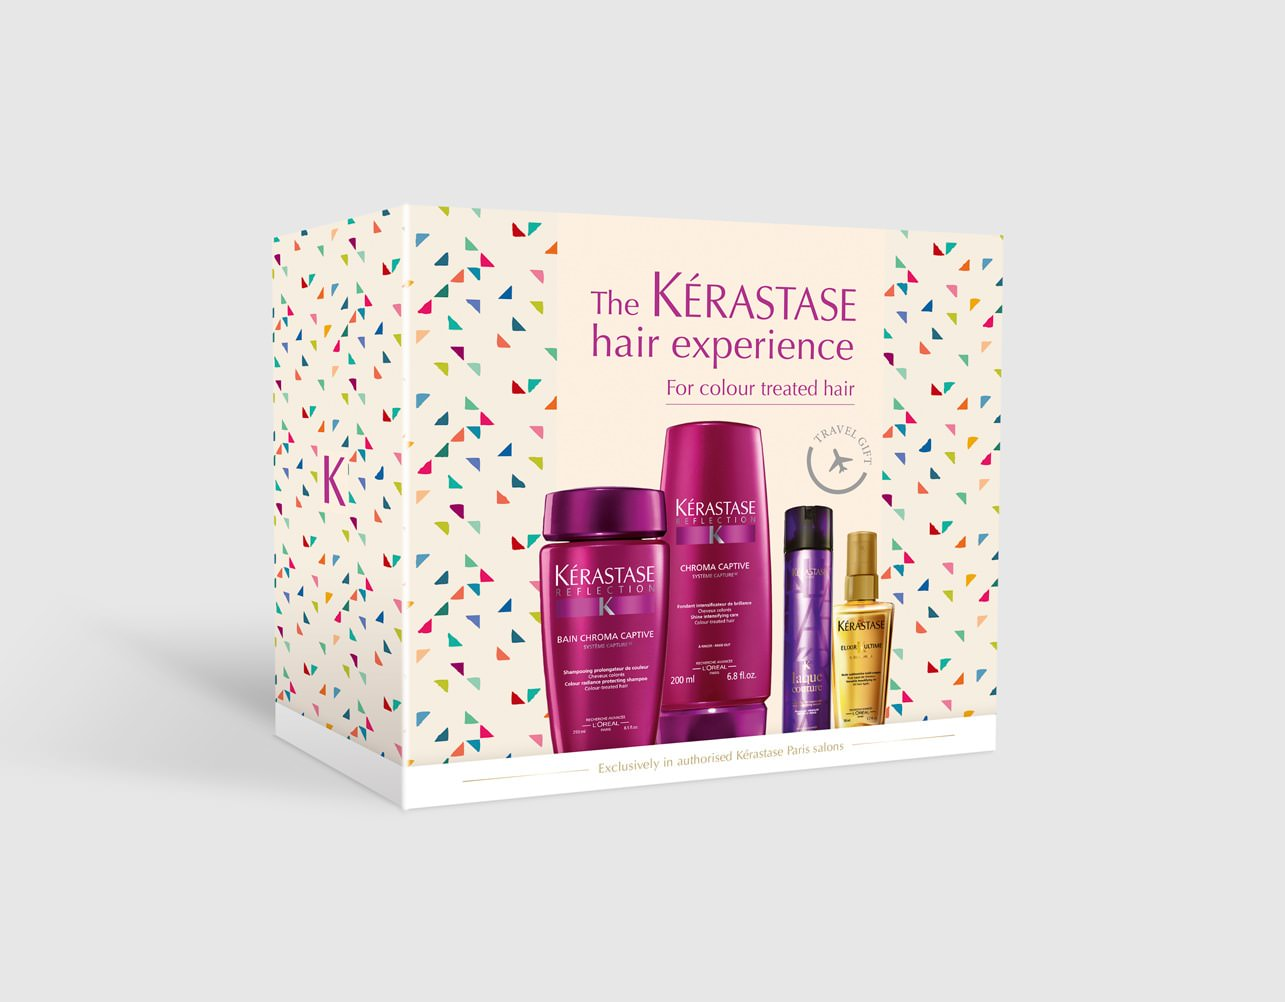 DJWFolio-Packaging_Kerastase_Coffrets-2015_3